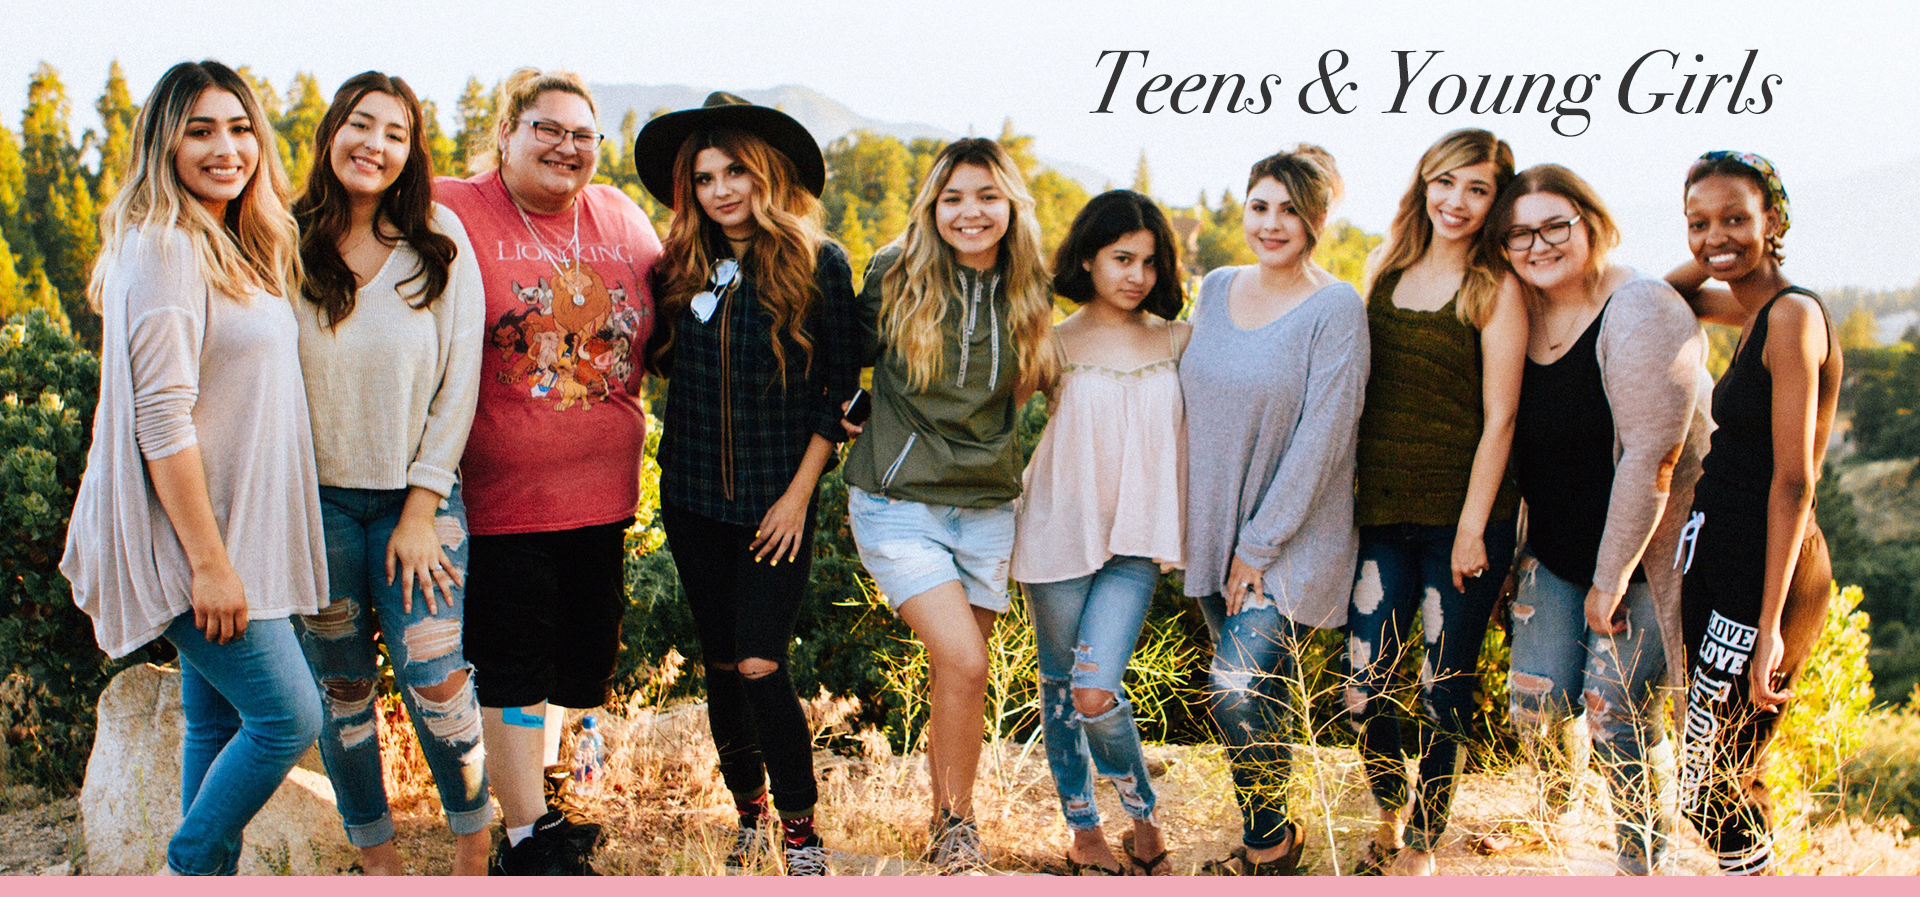 Therapy for teens and young girls in Maryland and Georiga | Anti-Anxiety in Maryland | Specialized counseling for women and girls in Leonardtown and Dunkirk Maryland